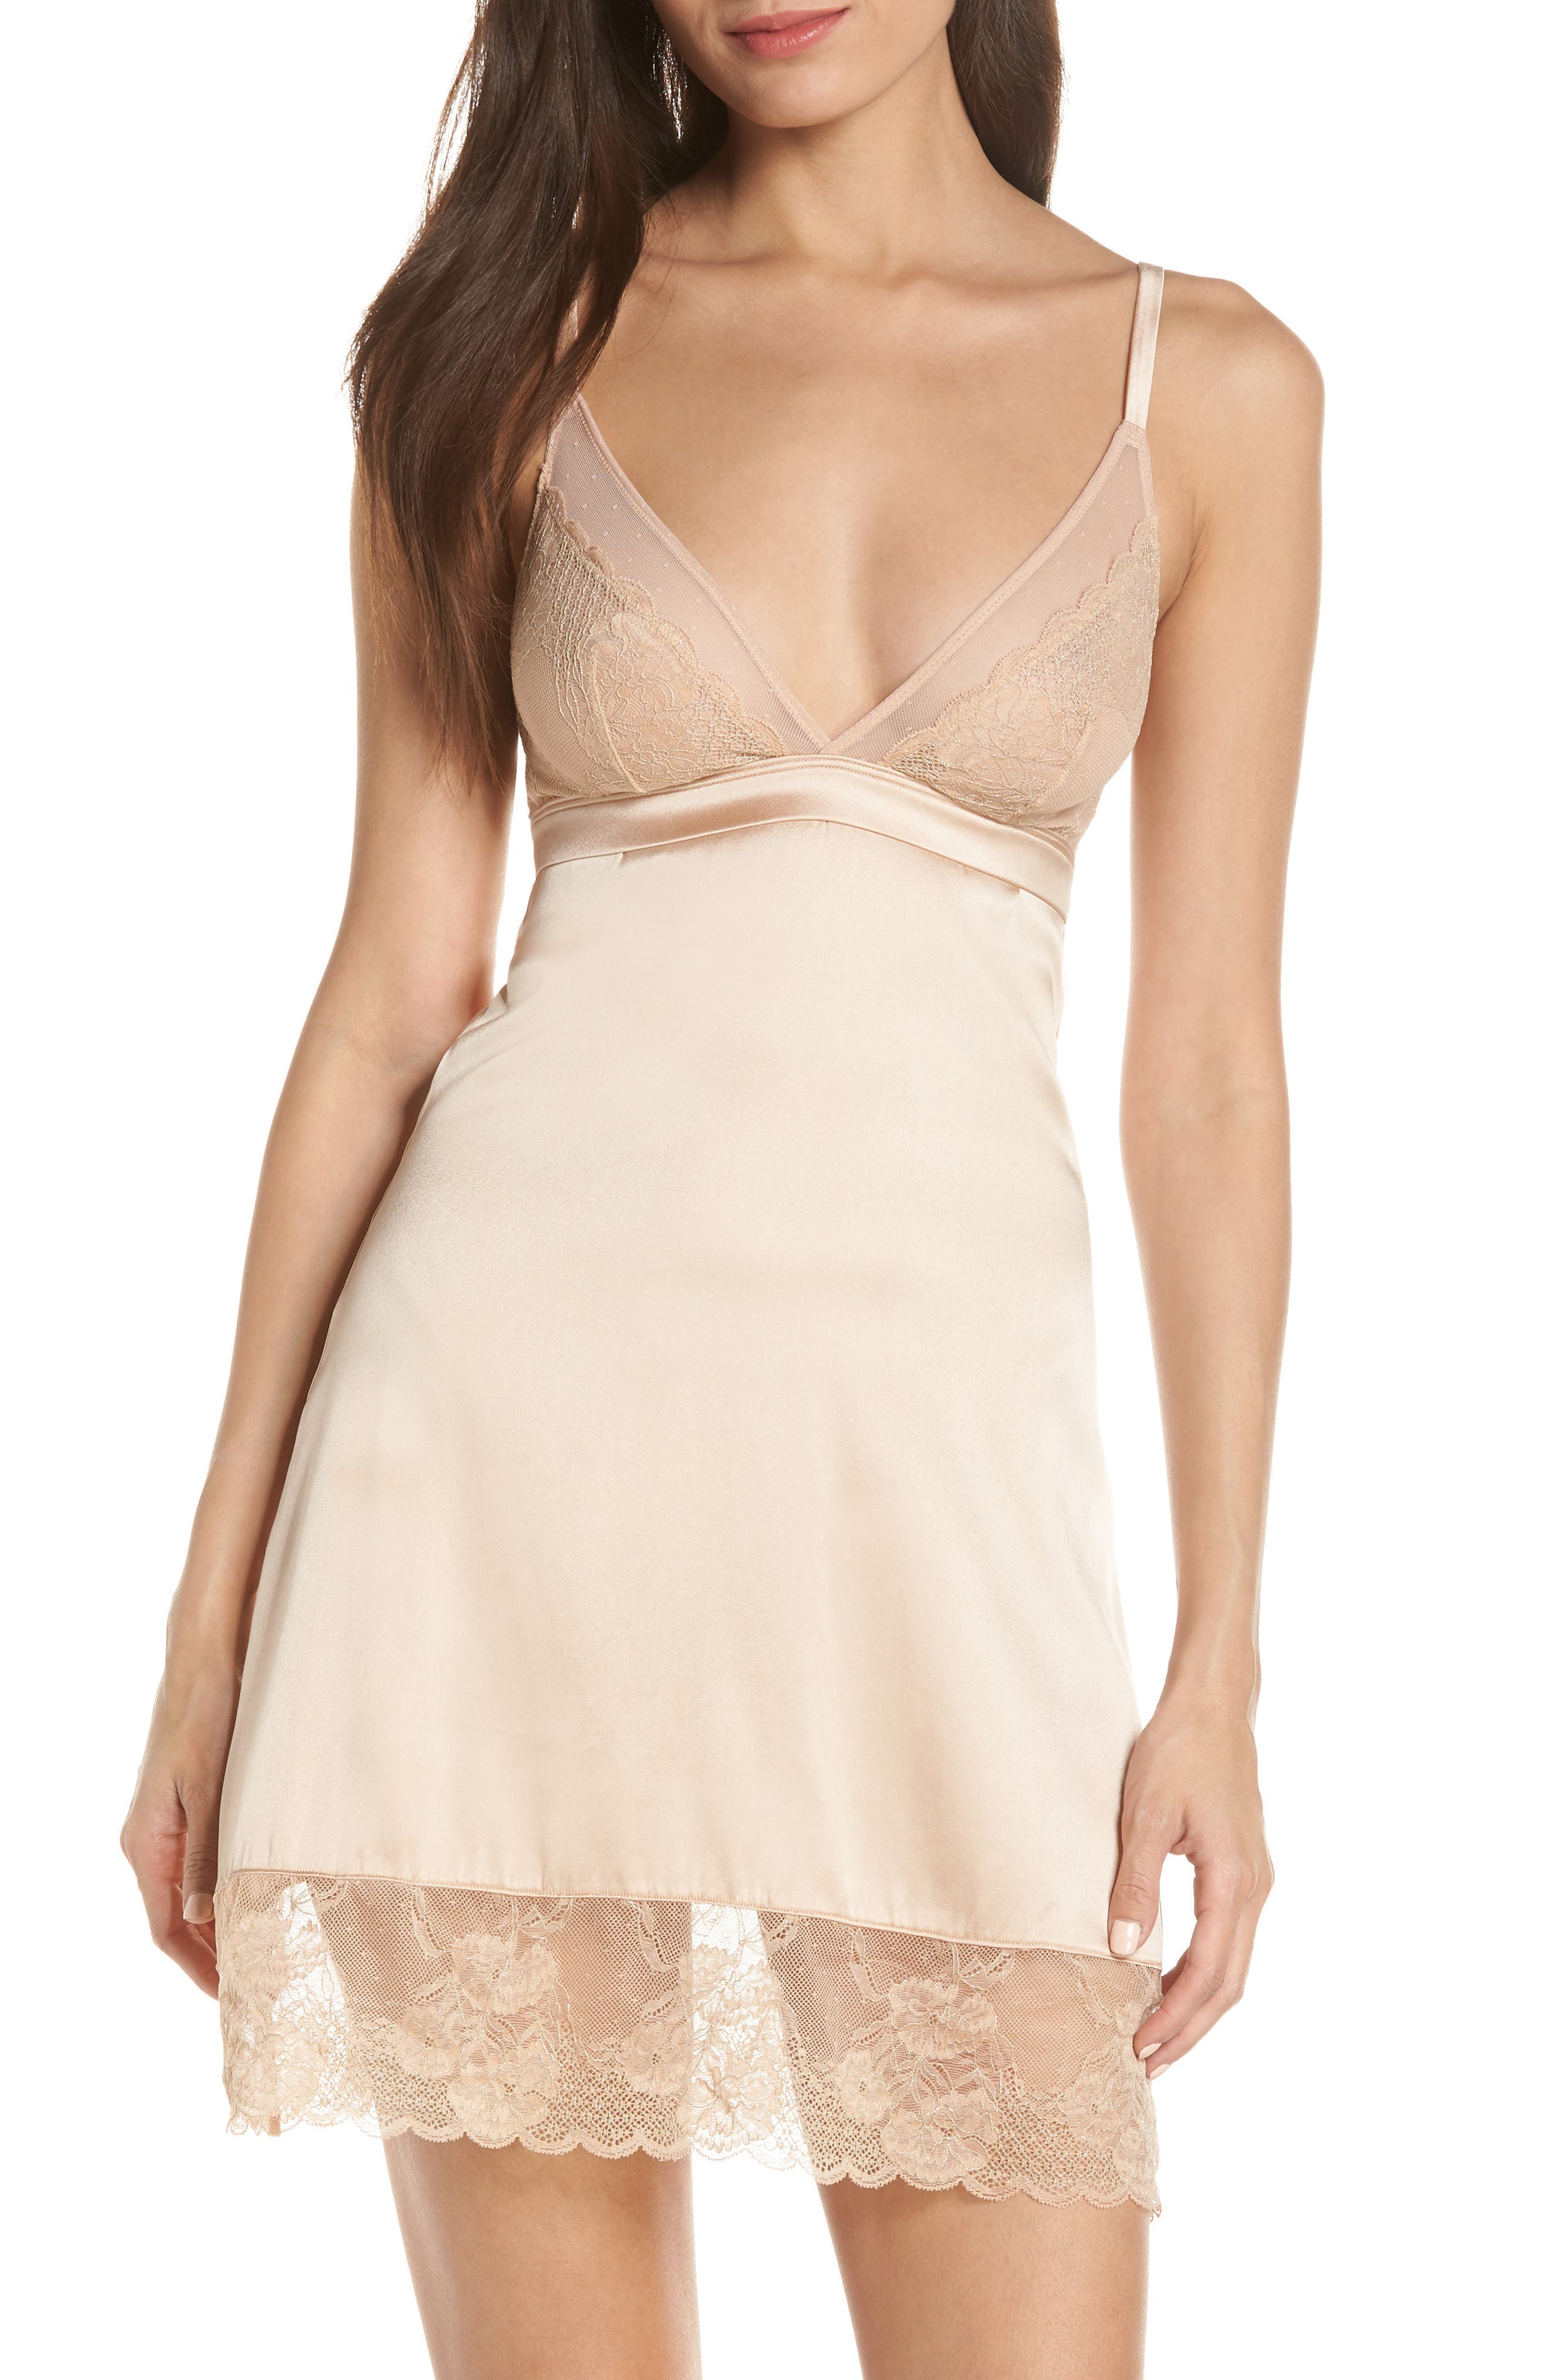 ADDICTION NOUVELLE LINGERIE Lace & Silk Chemise in Nude